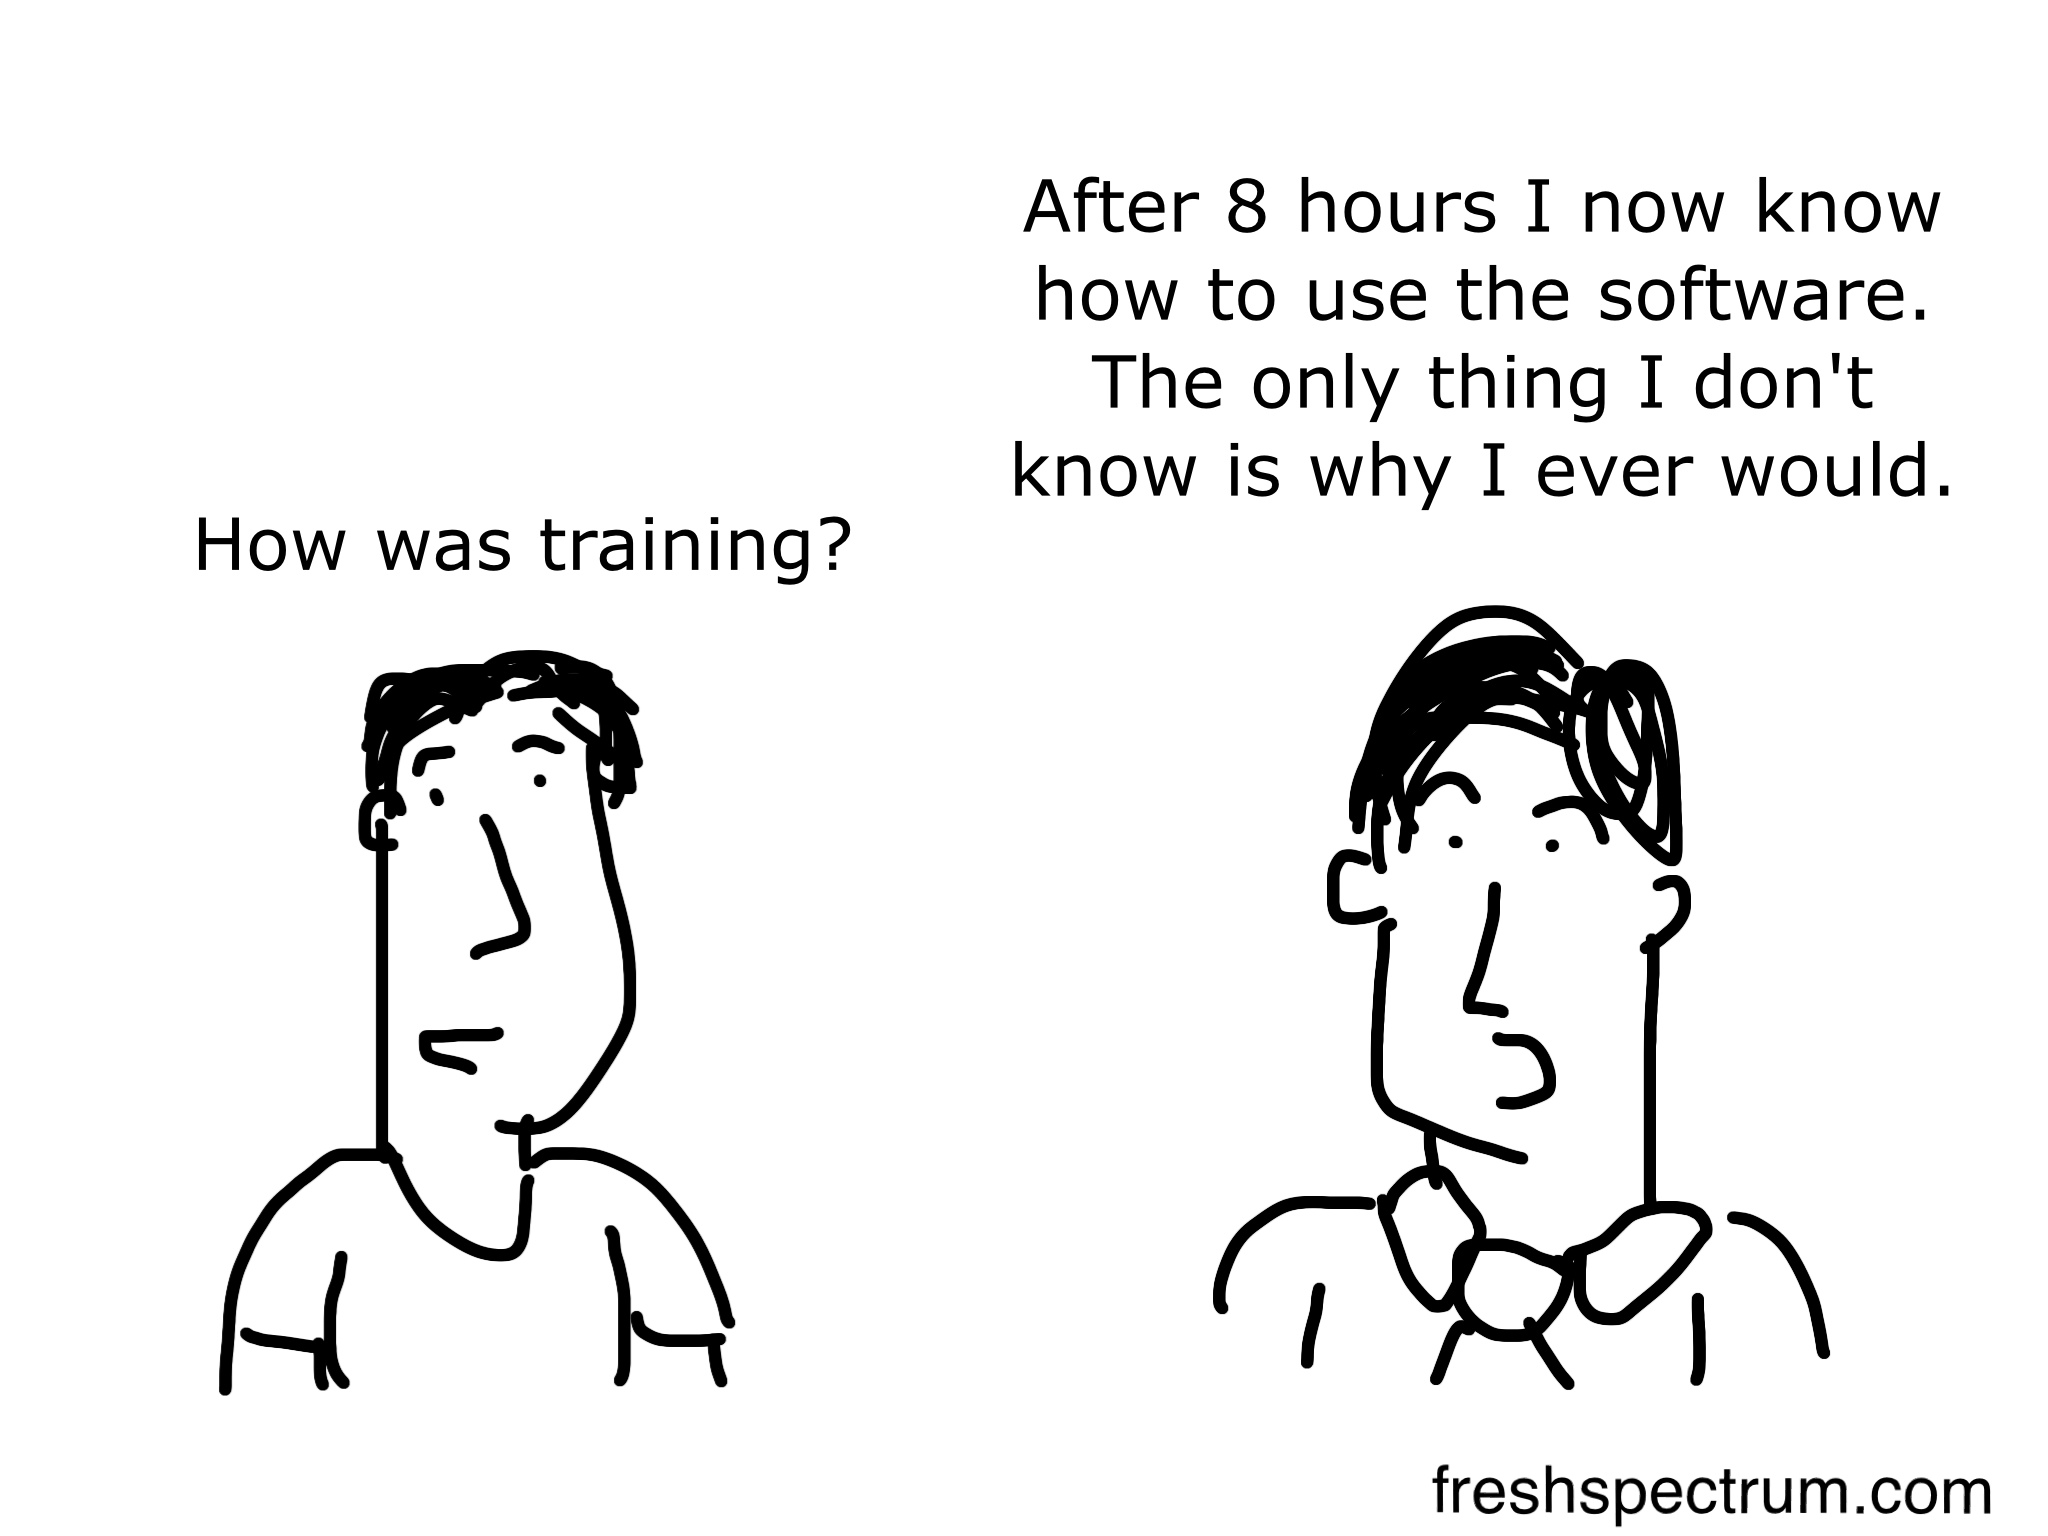 Training cartoon by Chris Lysy